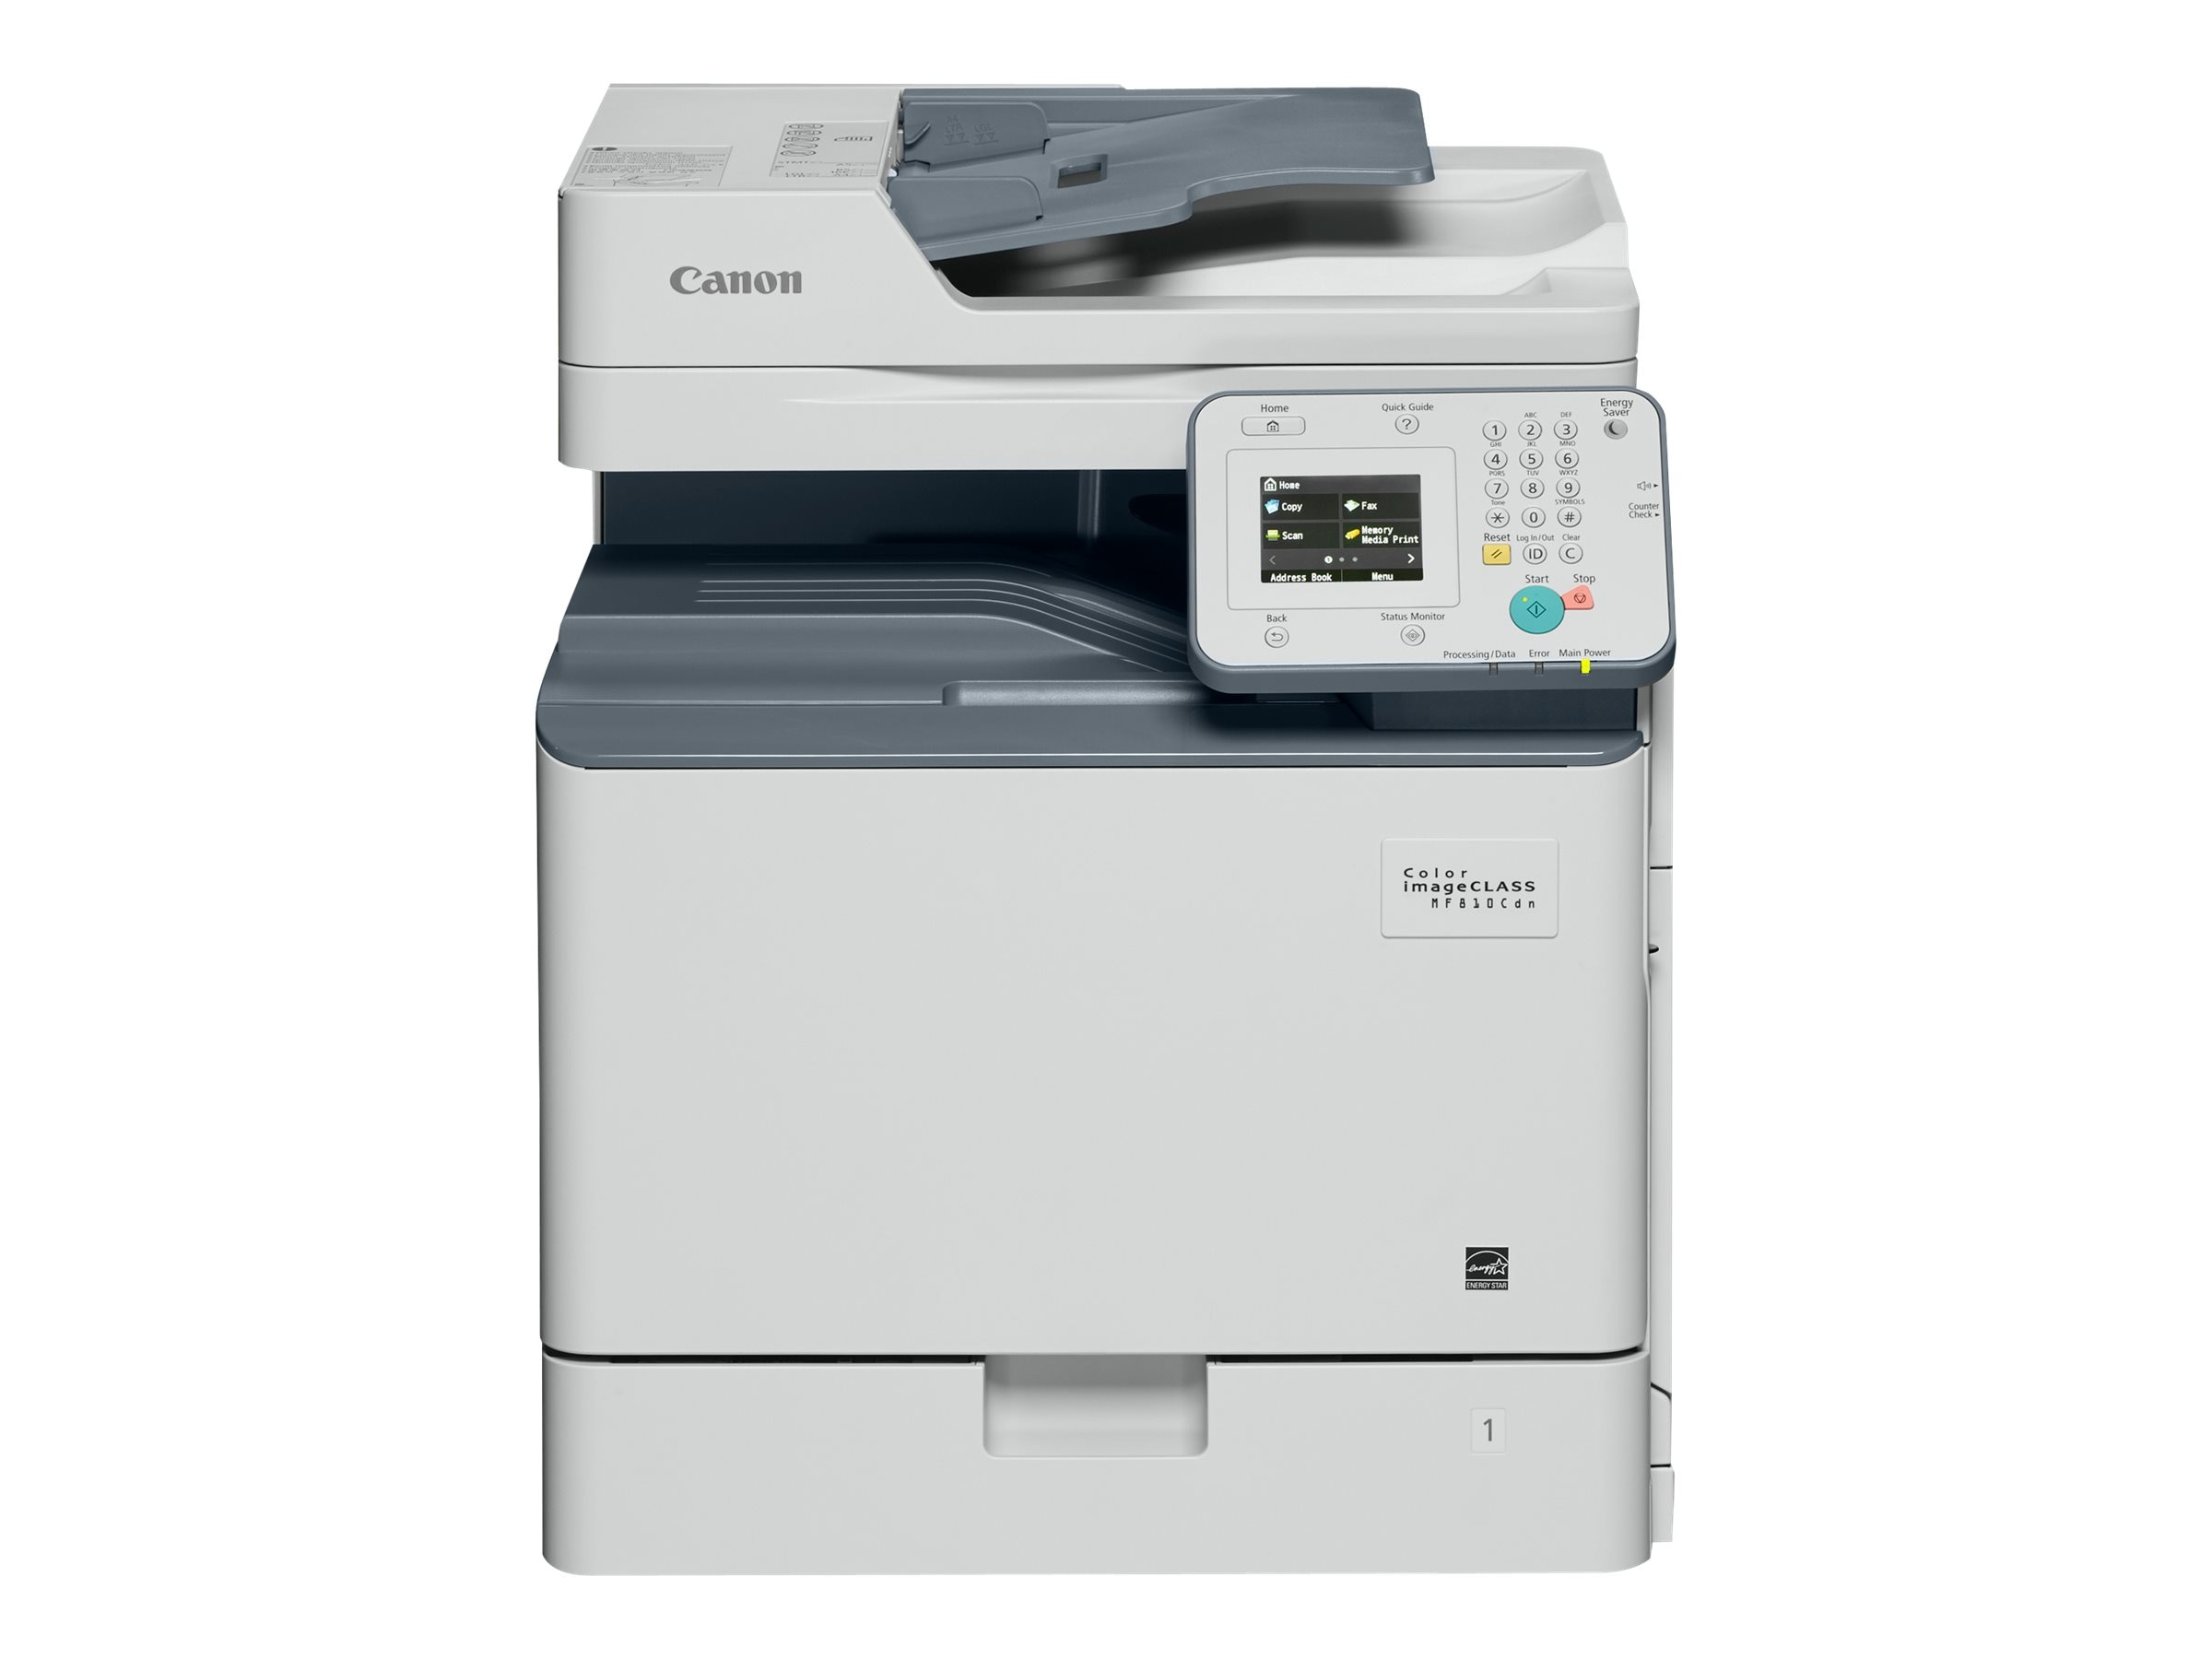 Canon Color imageCLASS MF810Cdn Laser MFP, 9548B001, 18366254, MultiFunction - Laser (color)